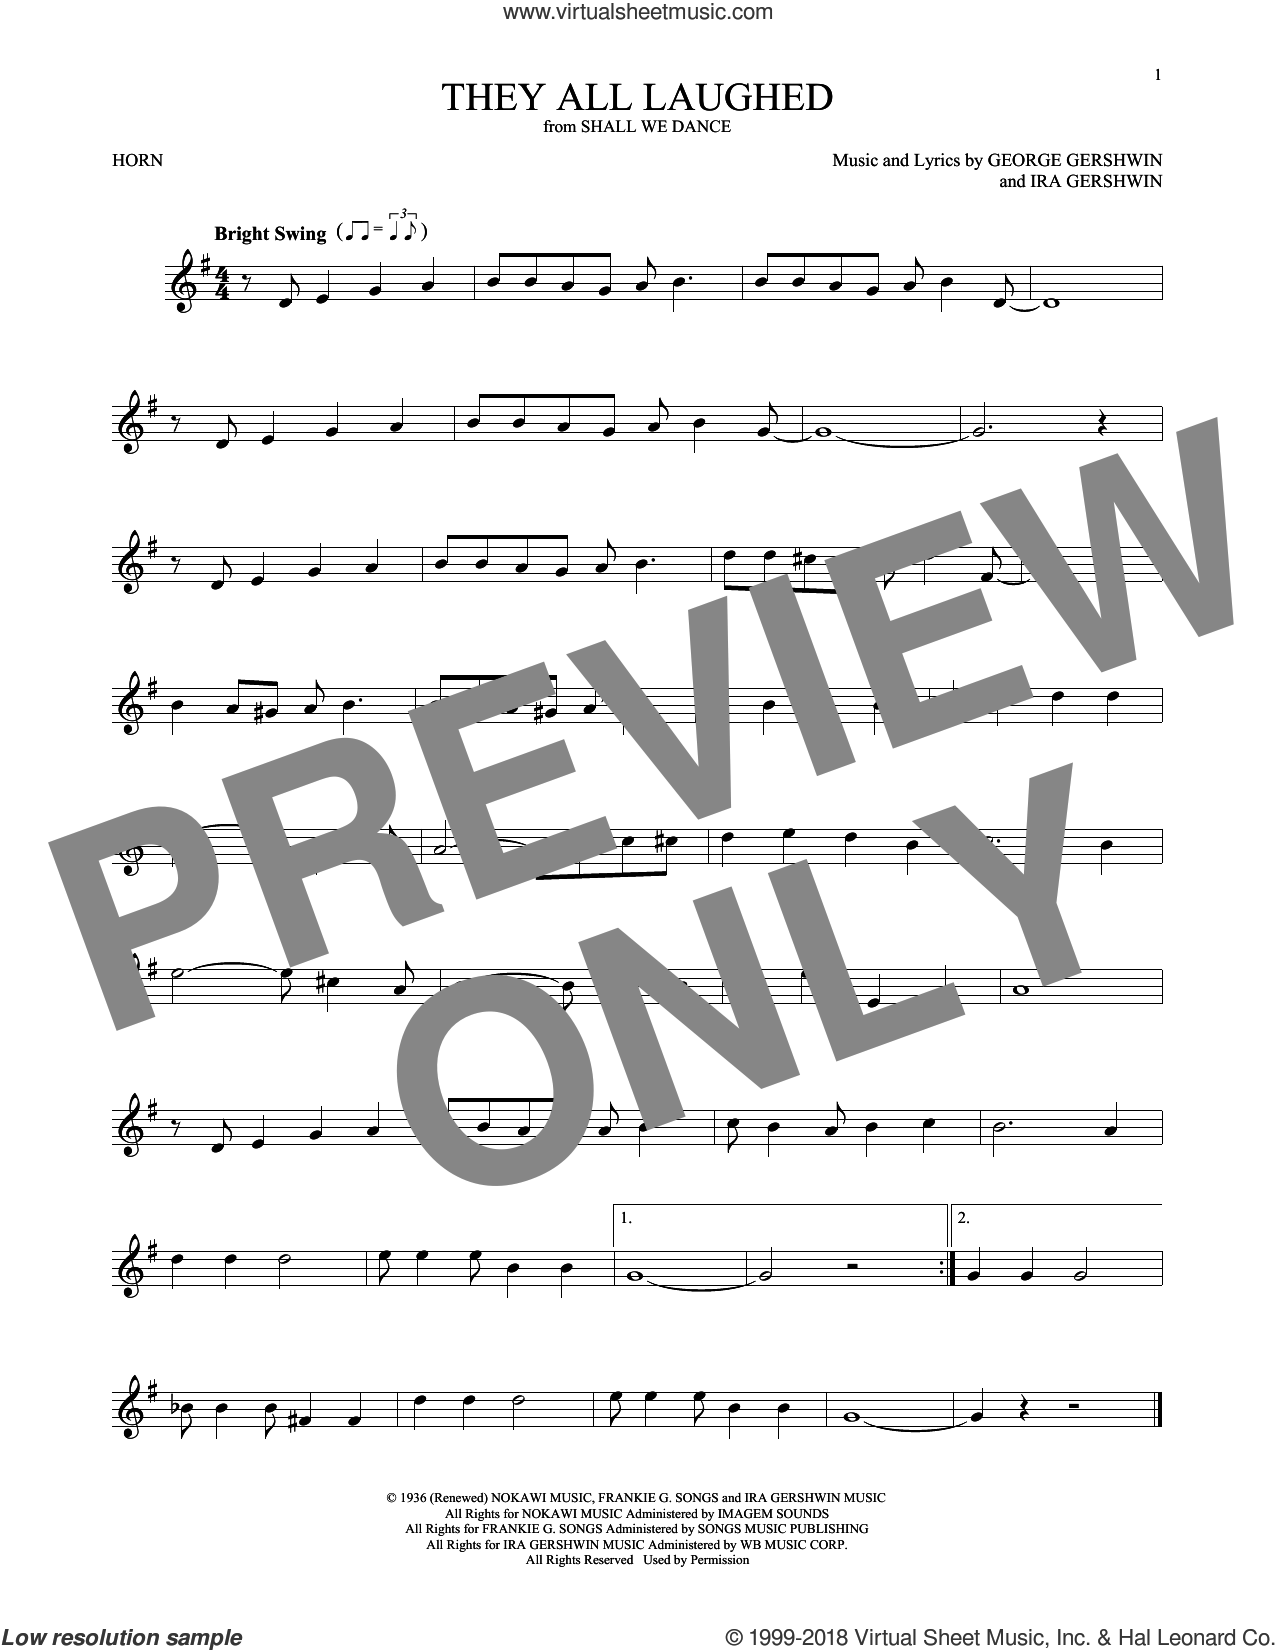 They All Laughed sheet music for horn solo by George Gershwin, Frank Sinatra and Ira Gershwin, intermediate skill level